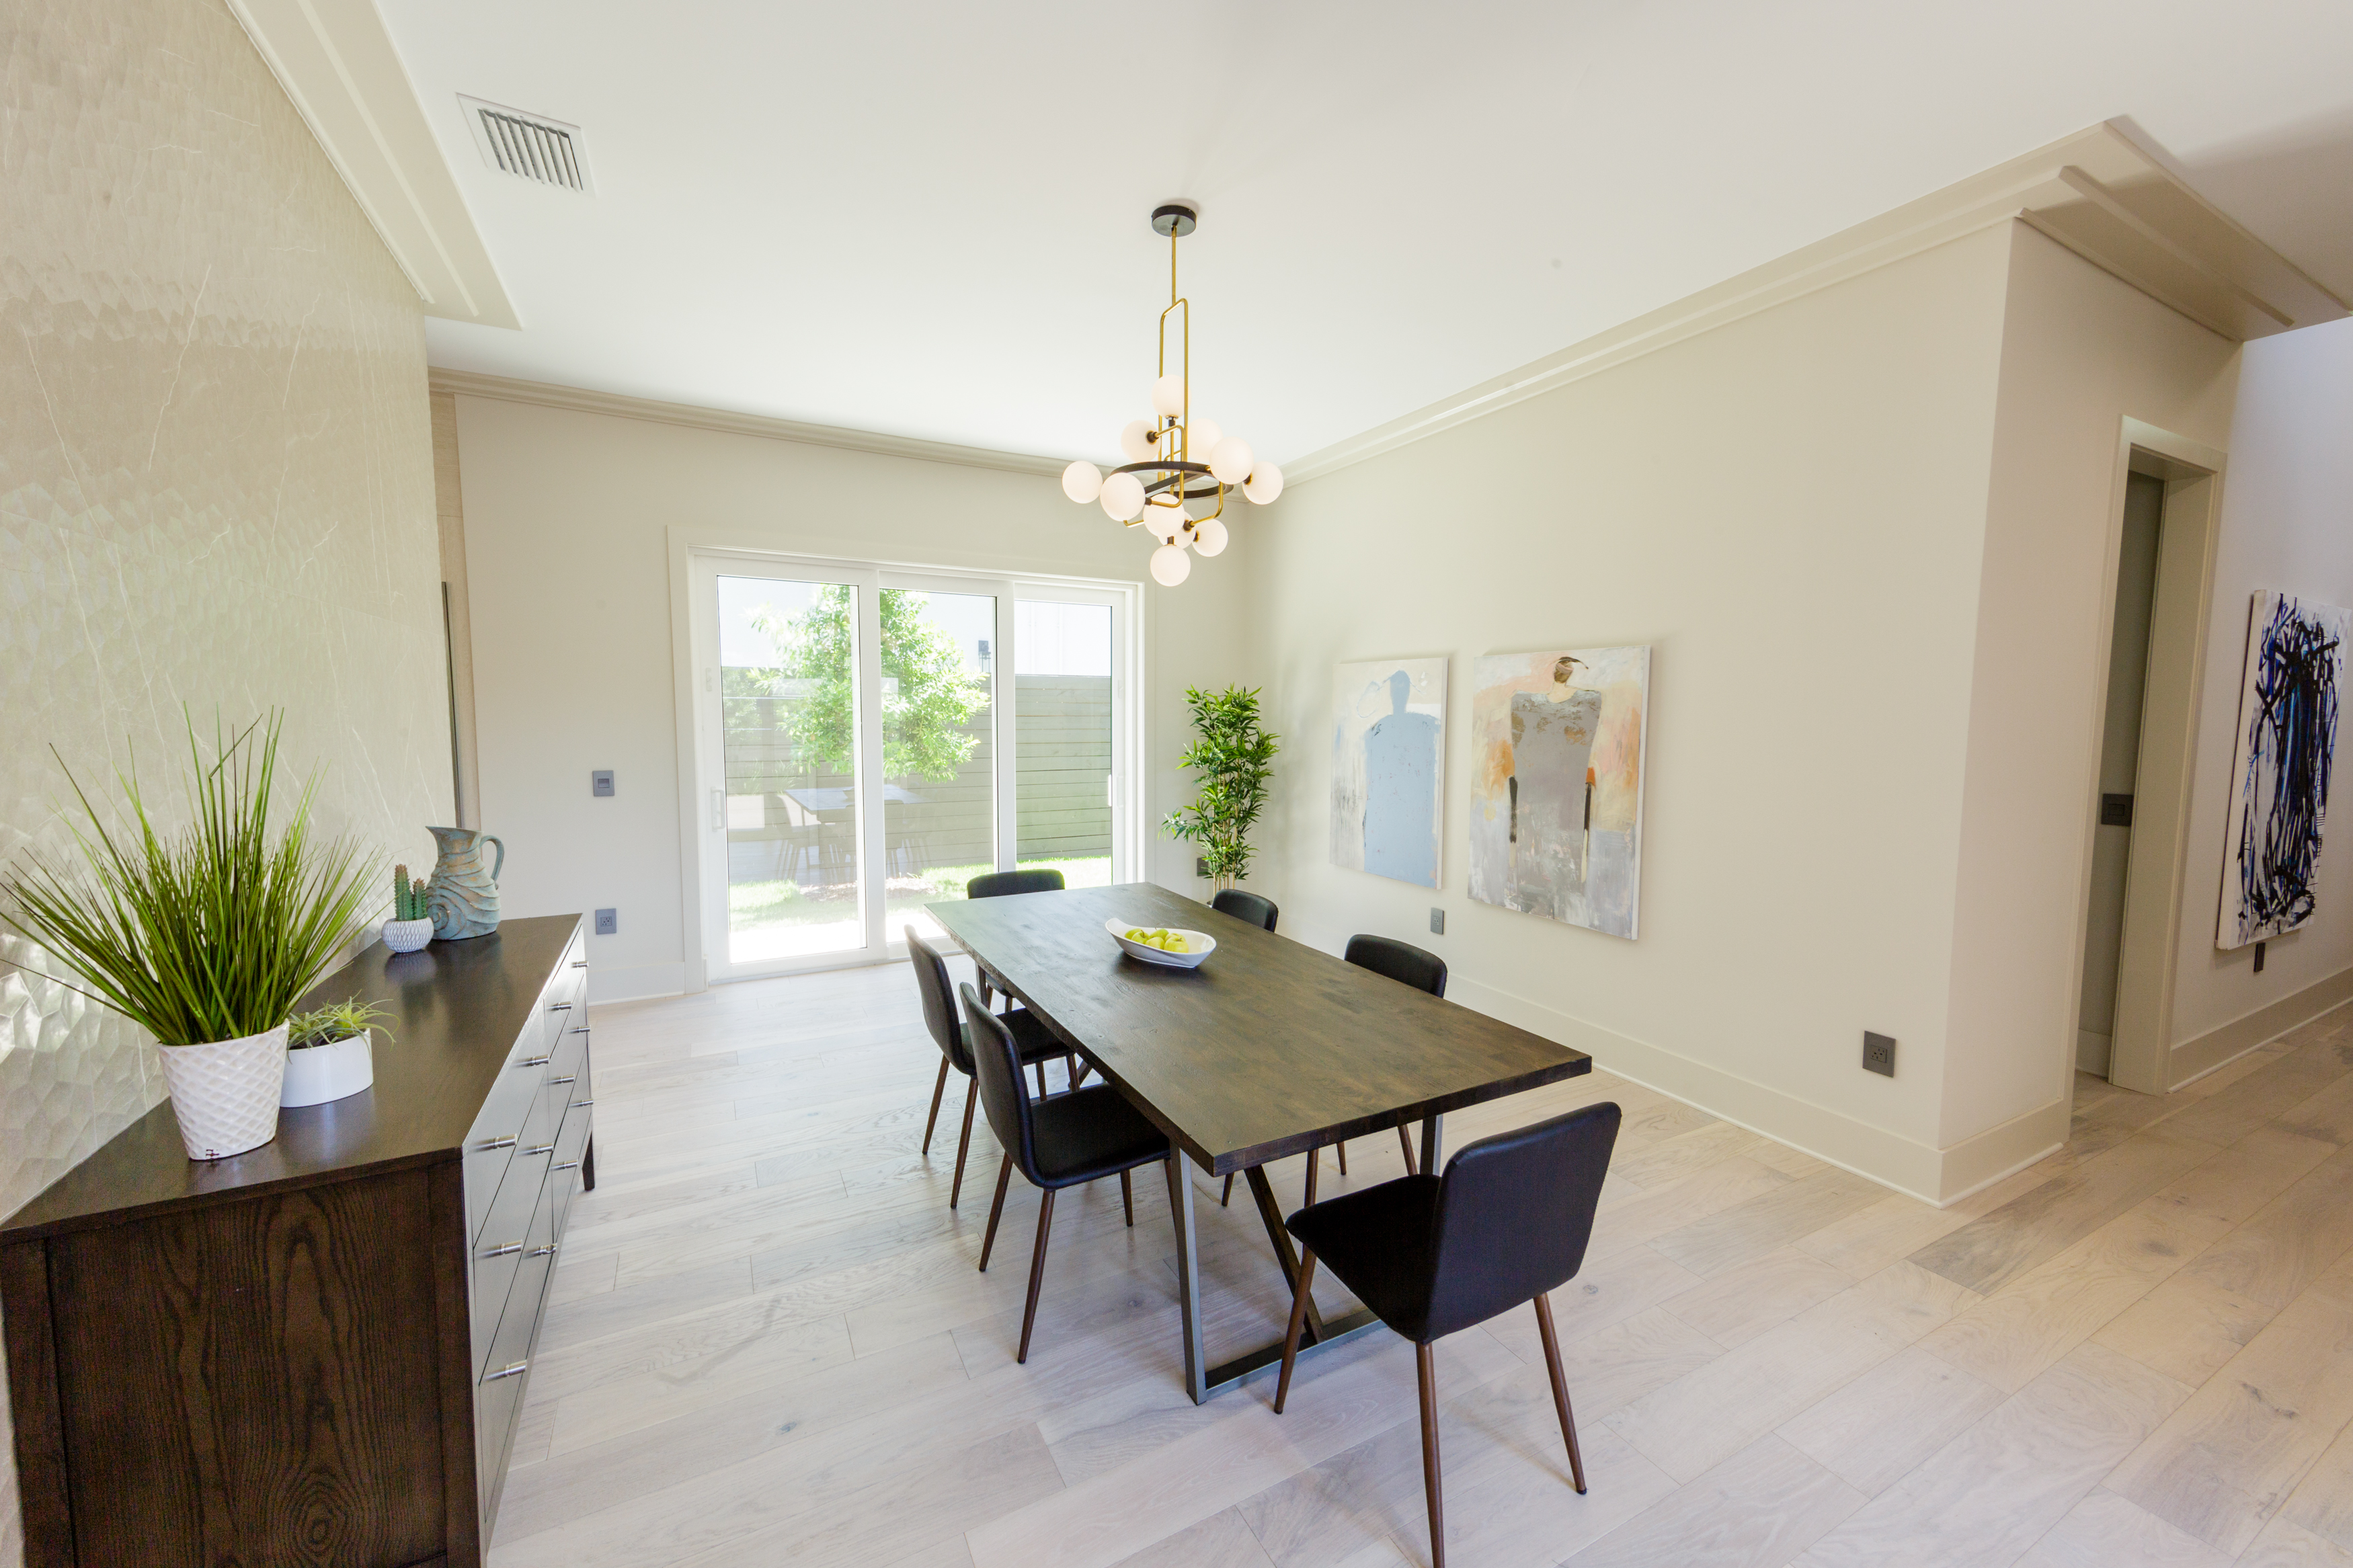 Grinnell Modern: Dining Room